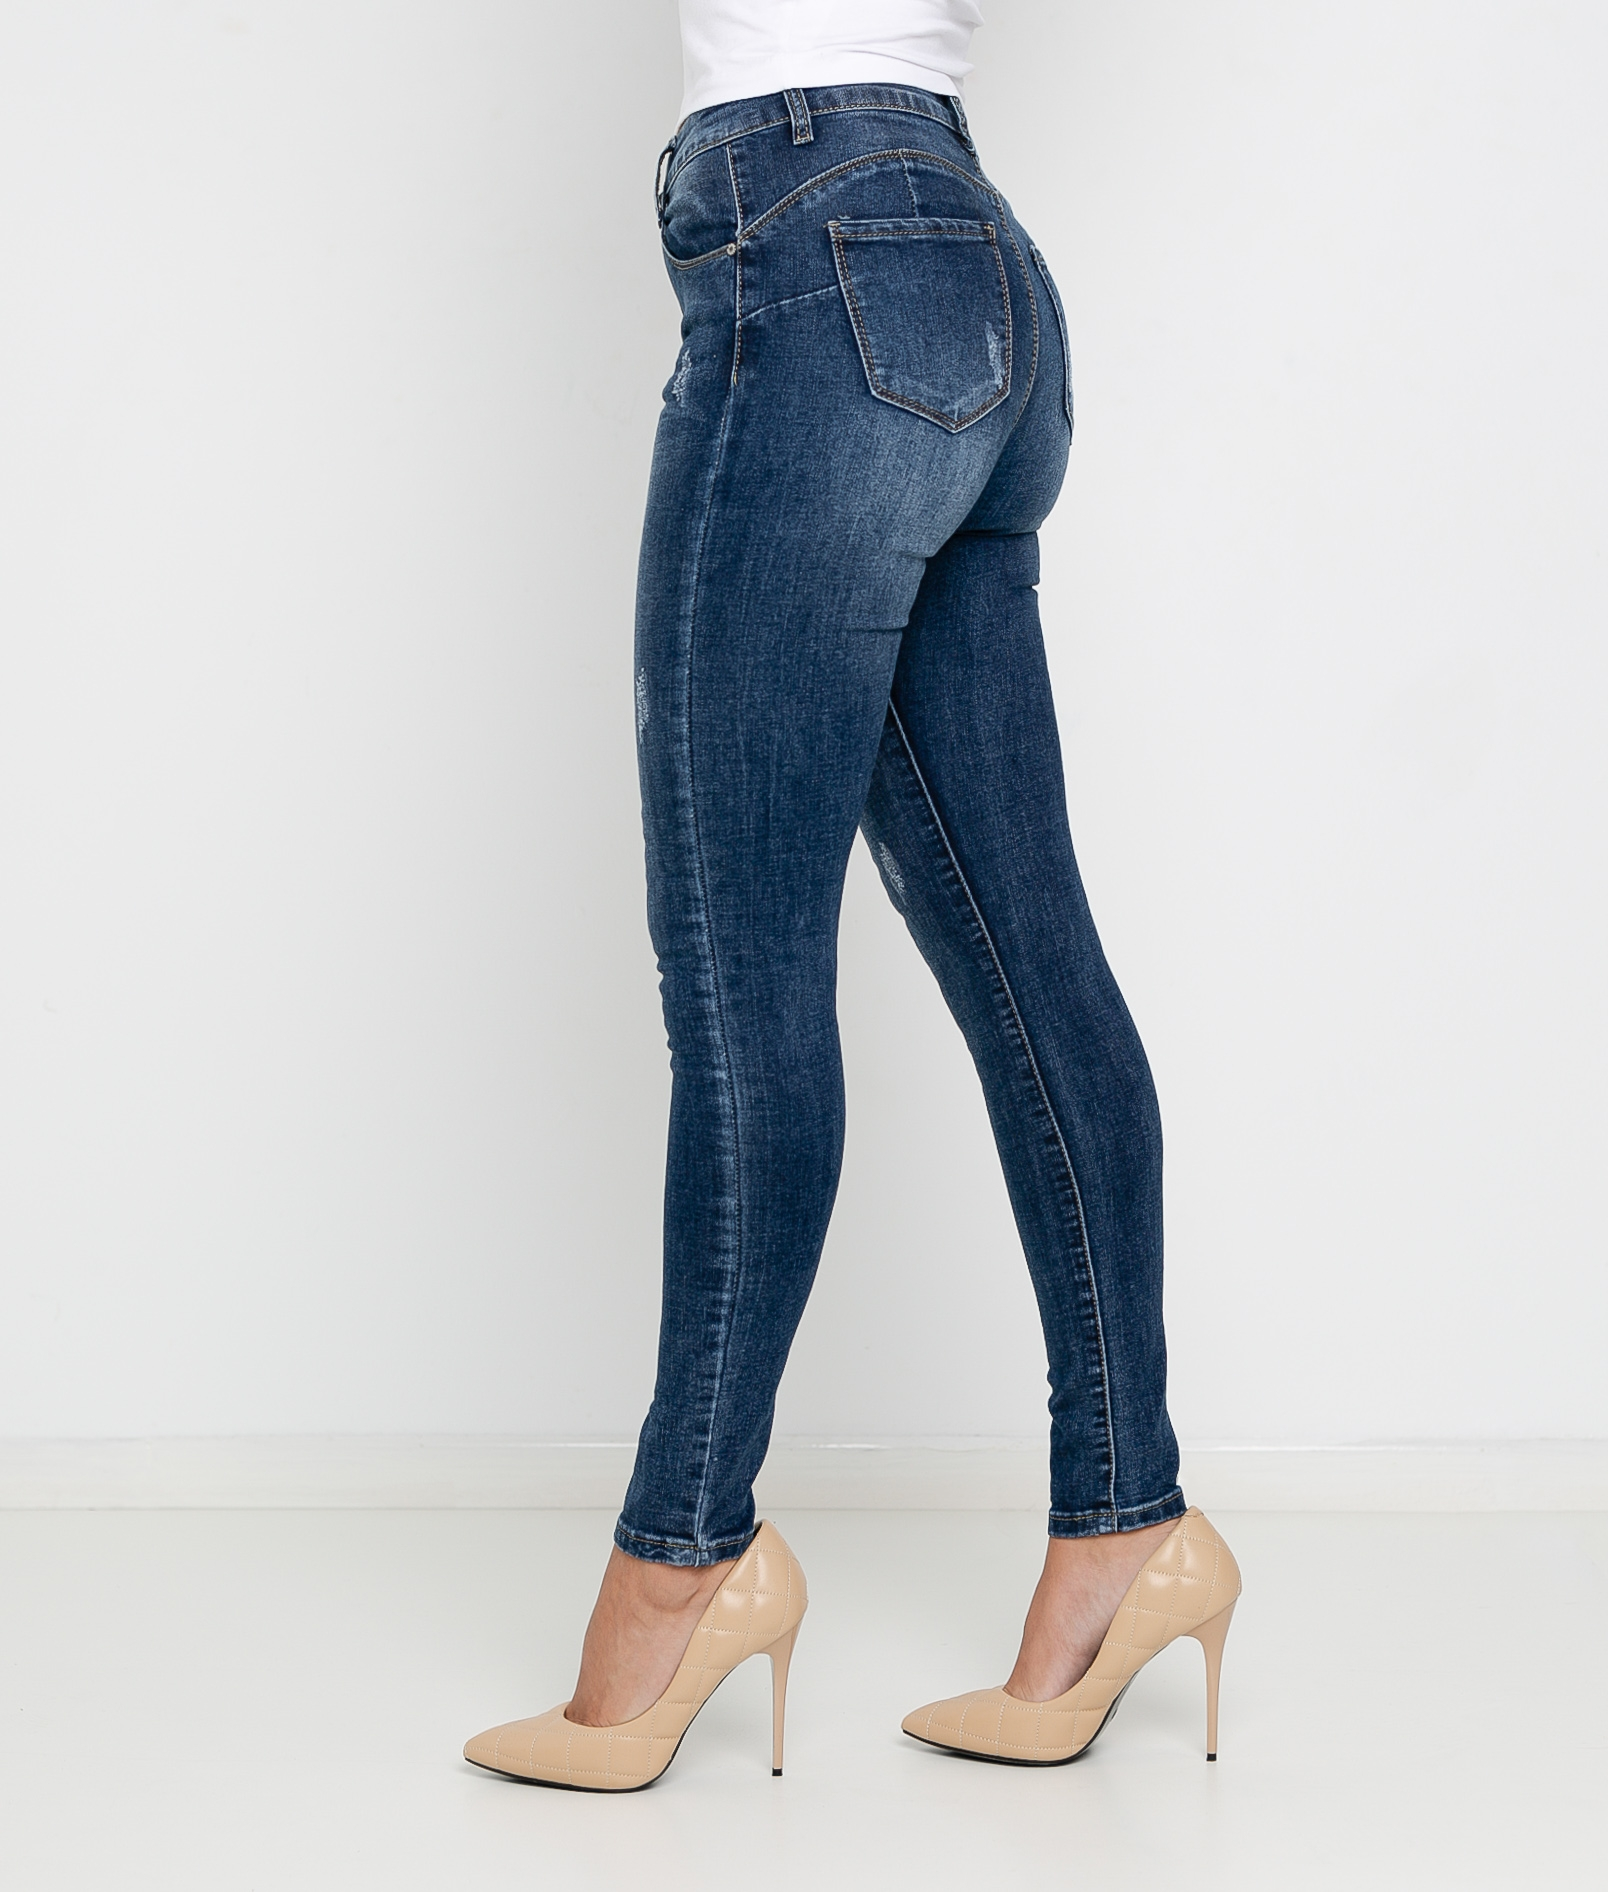 Pantaloni Aloa - Denim scuro